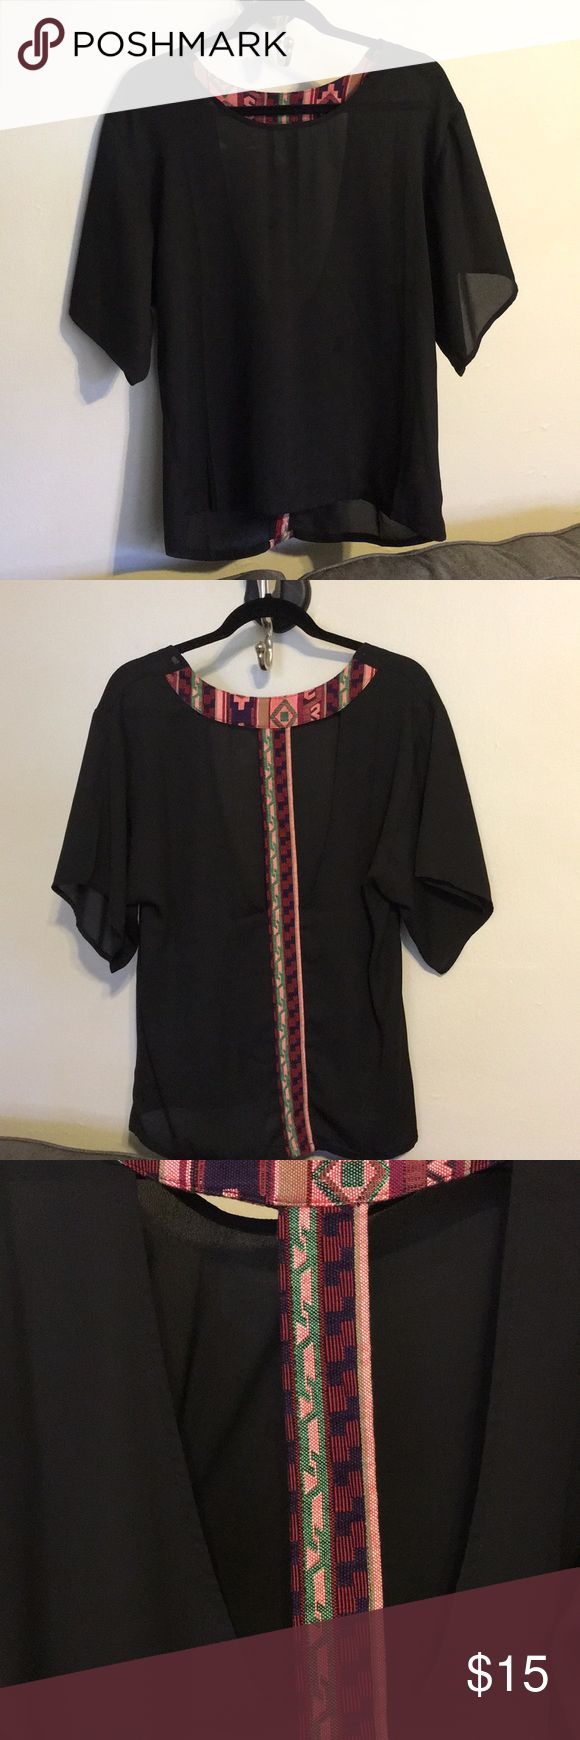 Black blouse Black thin blouse, flowy t shirt sleeves, open back with Aztec design. Worn once. Francesca's Collections Tops Blouses